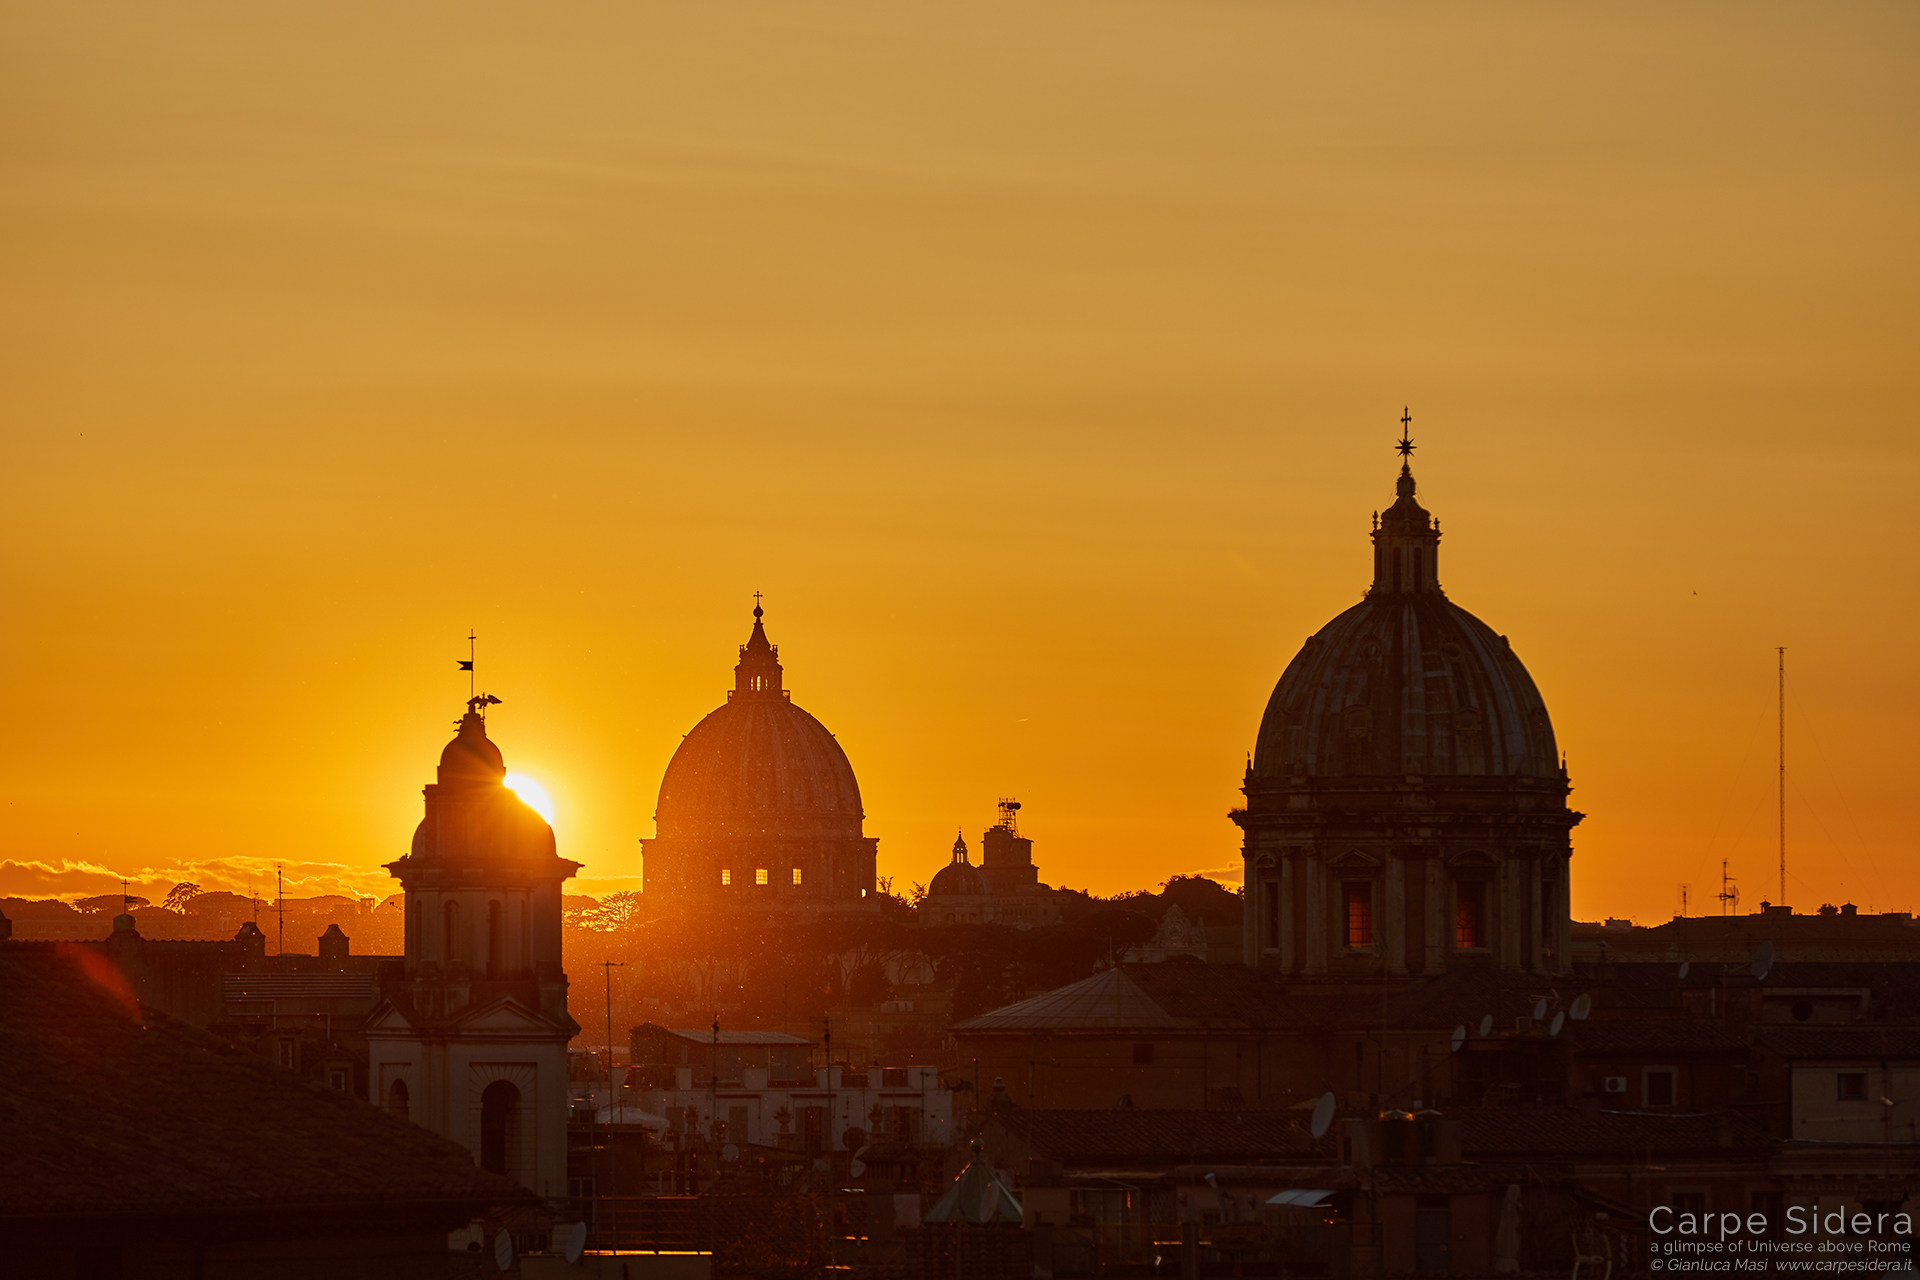 The sun says goodbye to Rome: the domes are Sant'Andrea della Valle (right) and St. Peter (close to center)